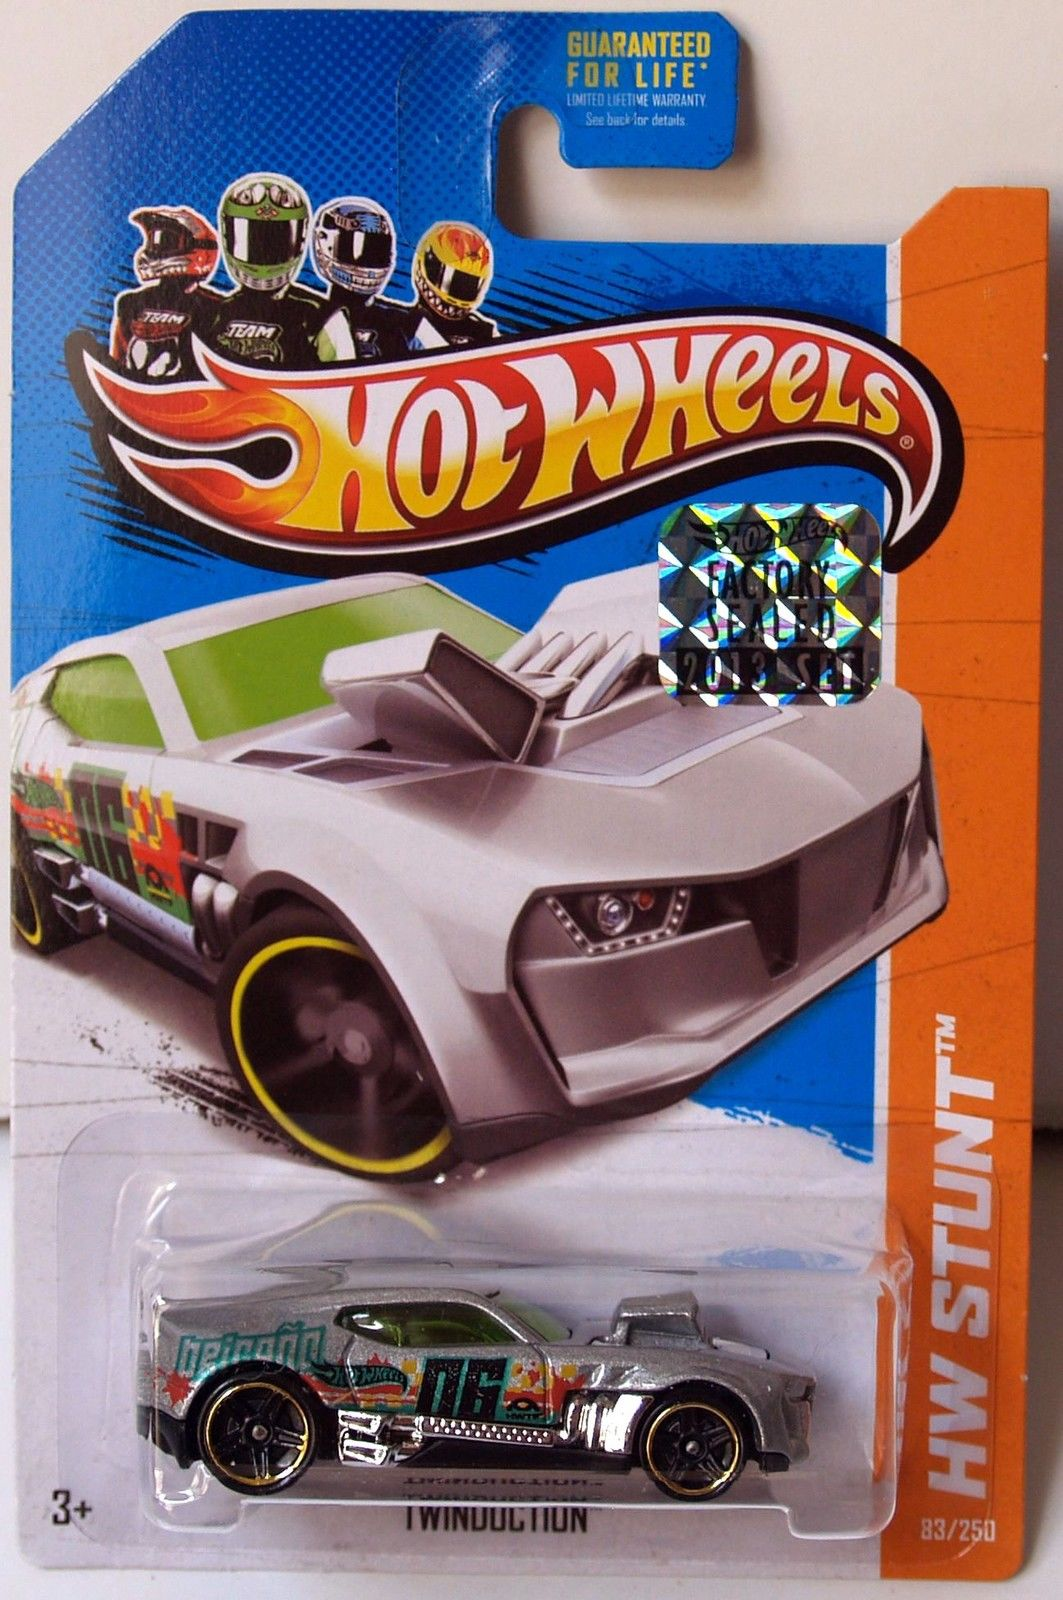 HOT WHEELS 2013 HW STUNT DRIFT RACE TWINDUCTION FACTORY SEALED